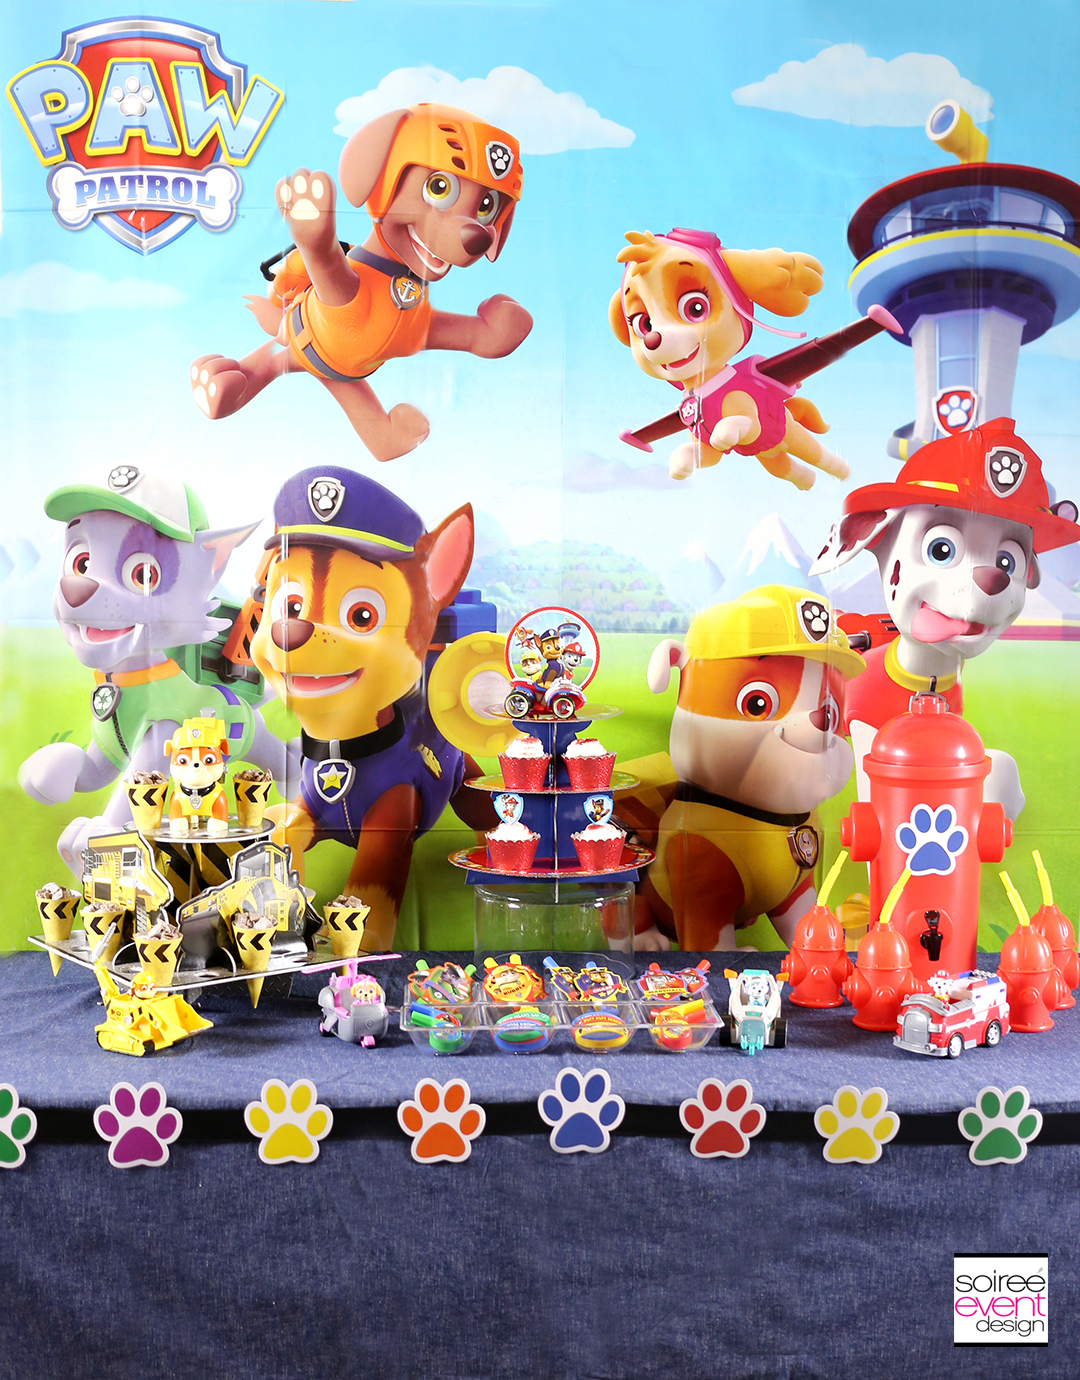 paw patrol party ideas your kids will love soiree event. Black Bedroom Furniture Sets. Home Design Ideas